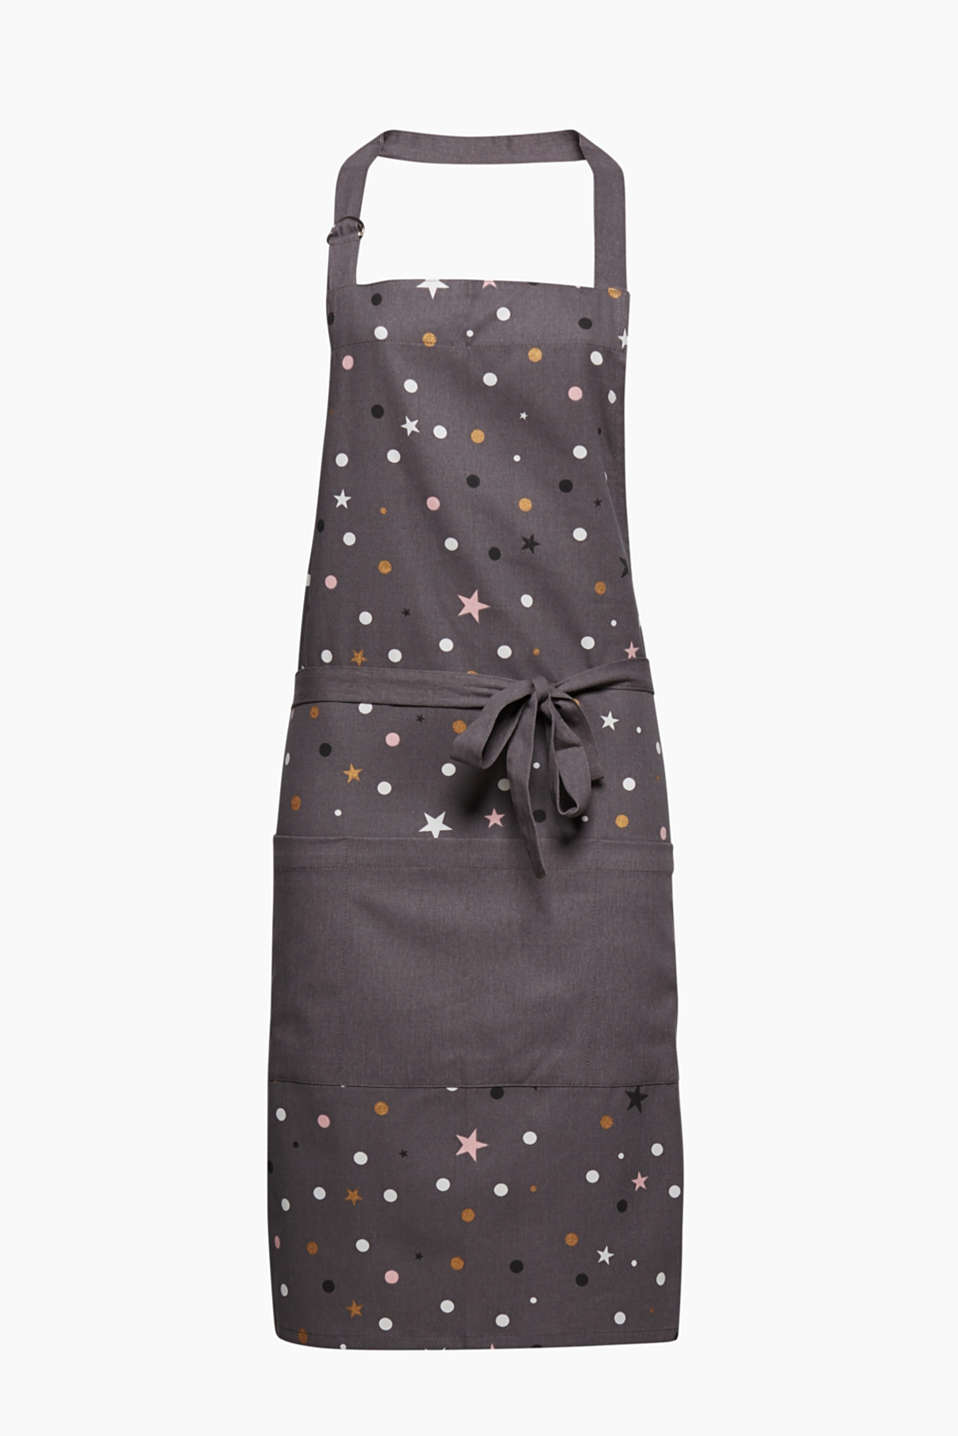 SHIMMER Collection - stars and polka dots make this kitchen apron extremely eye-catching.